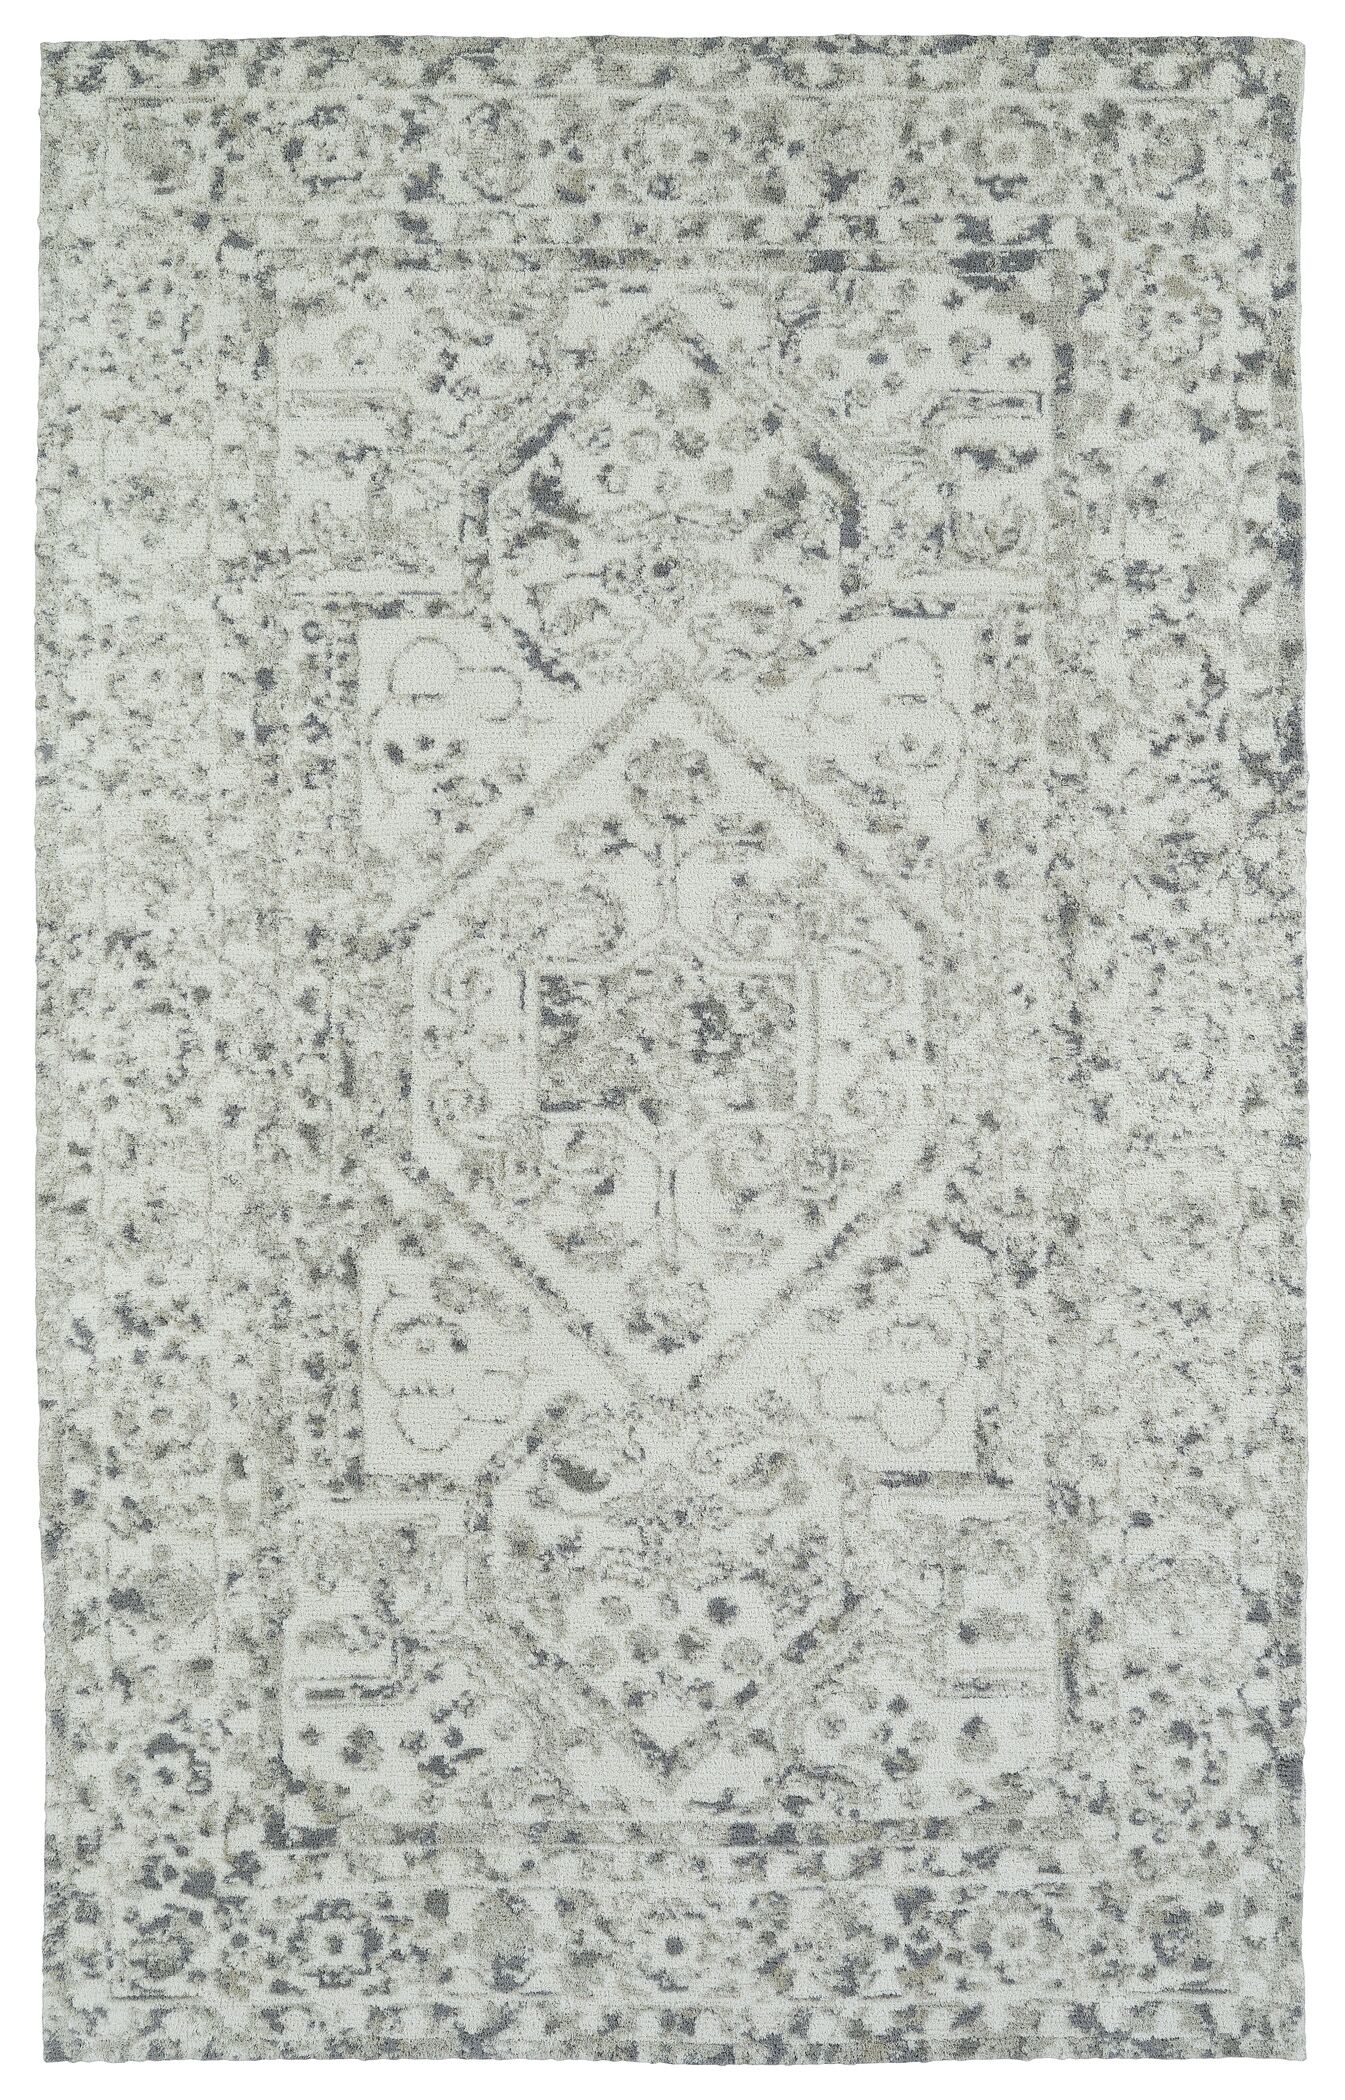 Theroux Ivory Area Rug Rug Size: Rectangle 9' x 12'